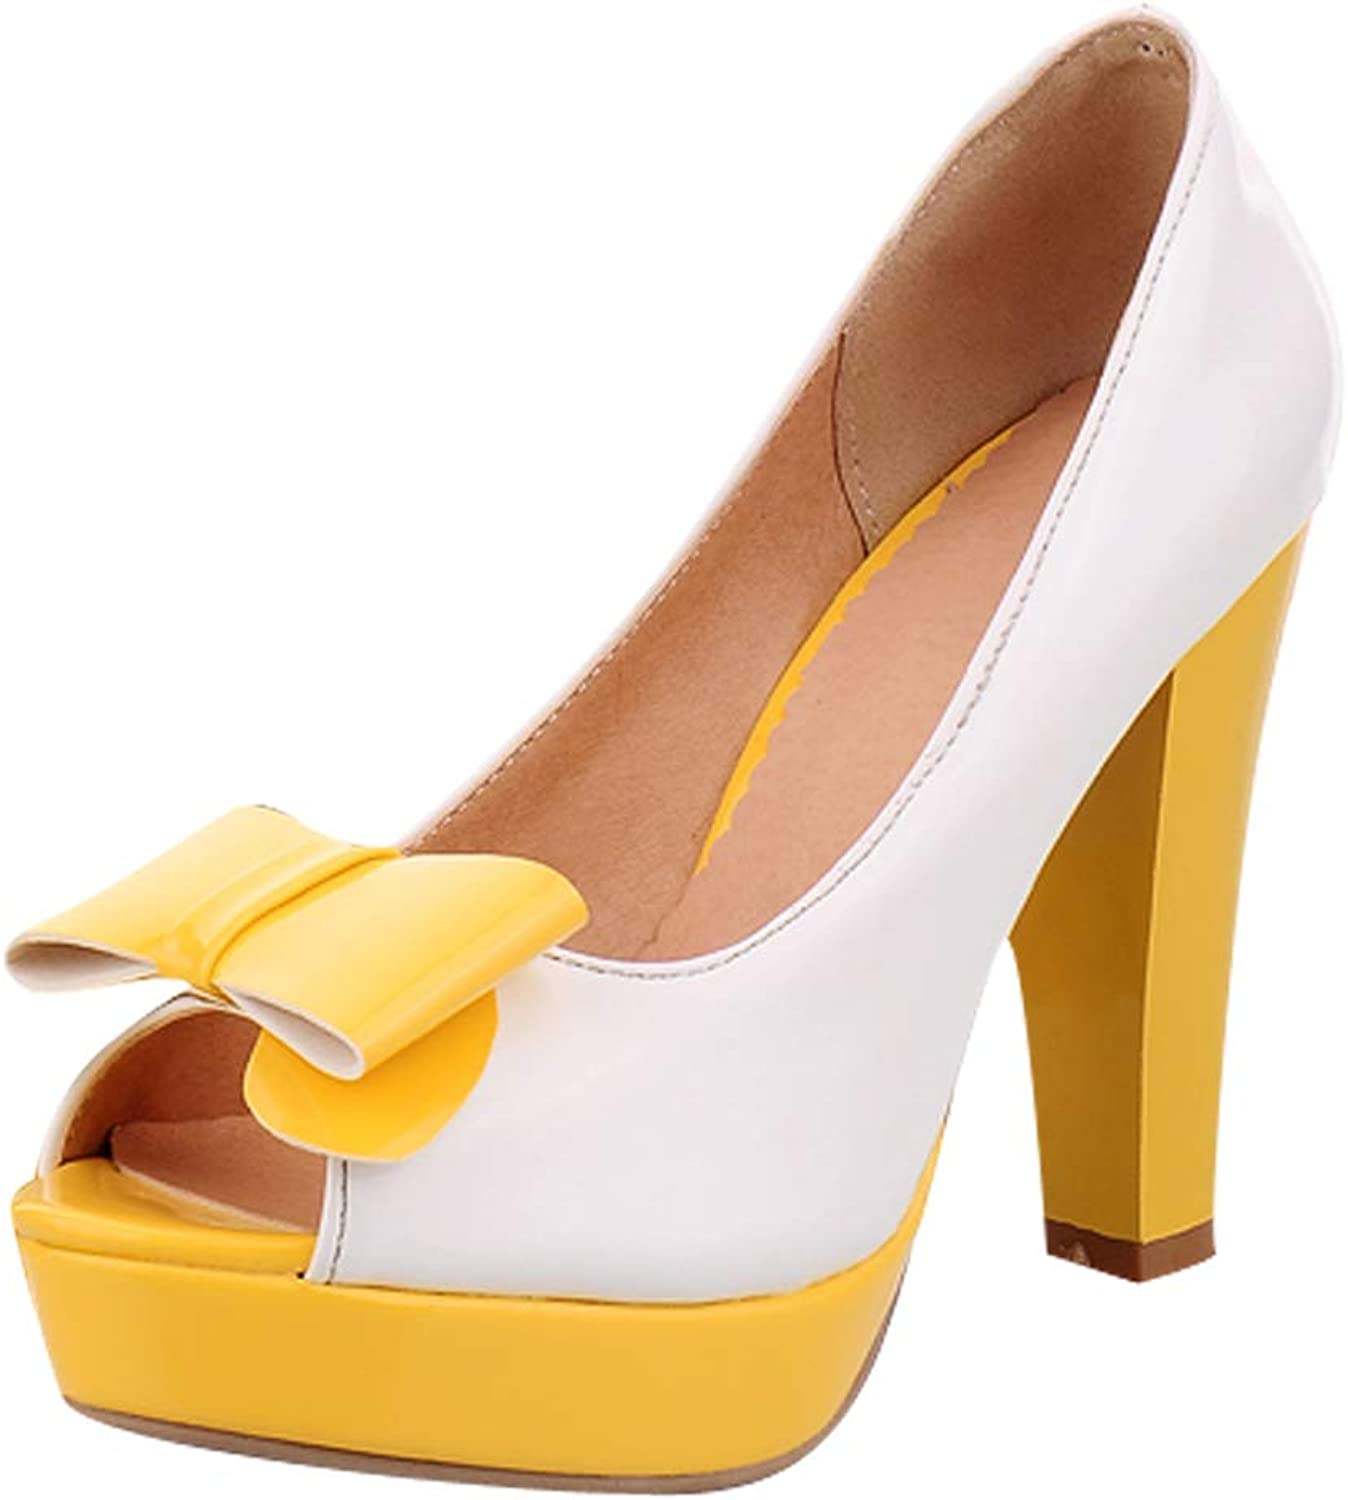 Charm Foot Womens Platform High Heel Peep Toe Pumps